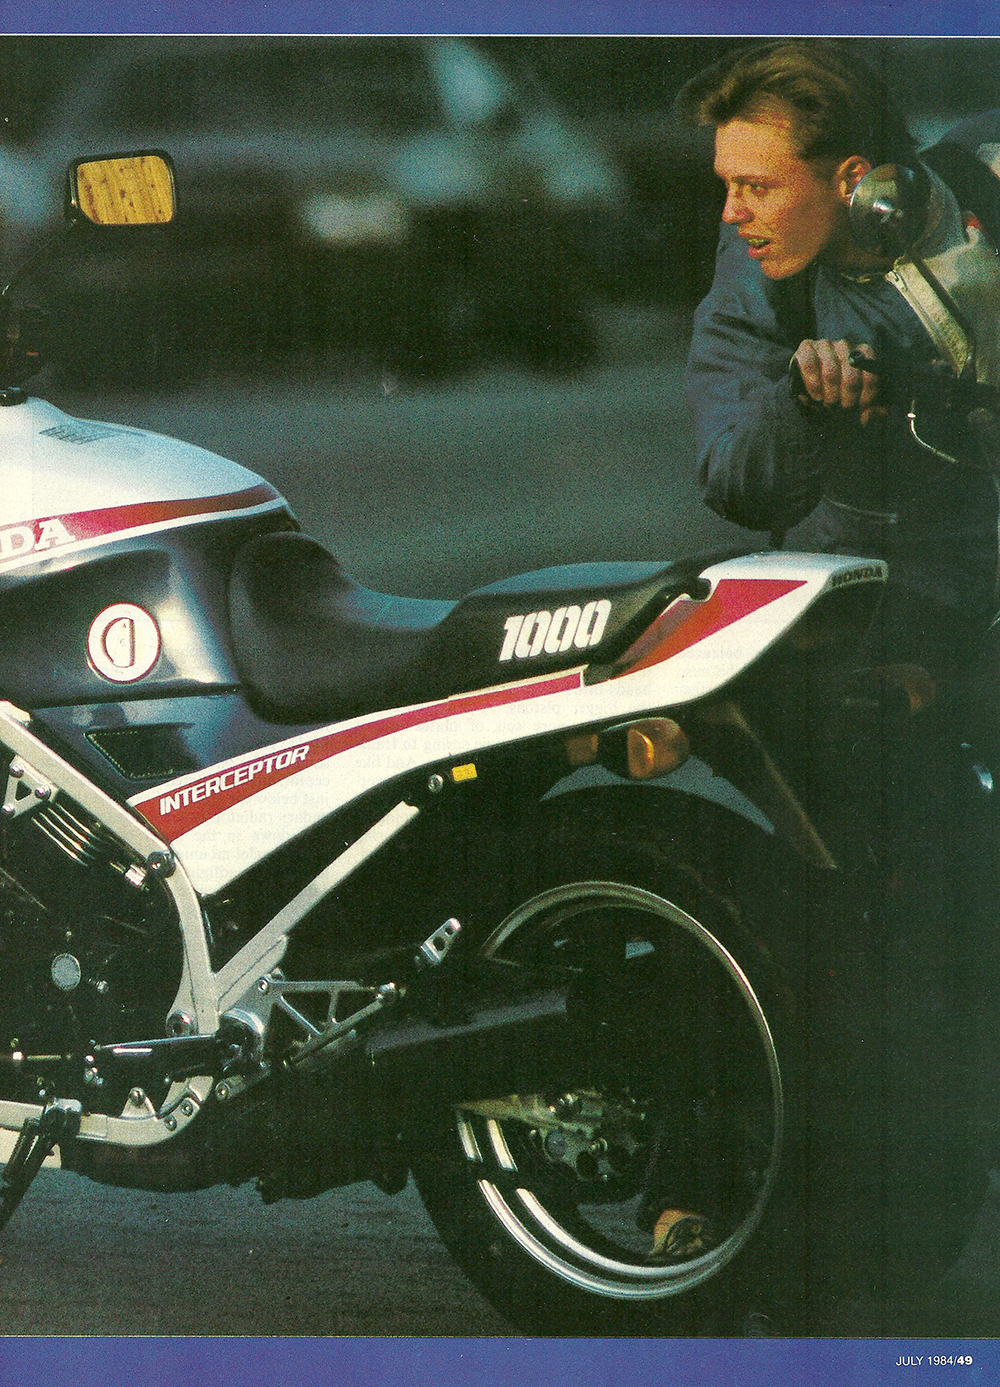 1984 Honda 1000 Interceptor 02.jpg